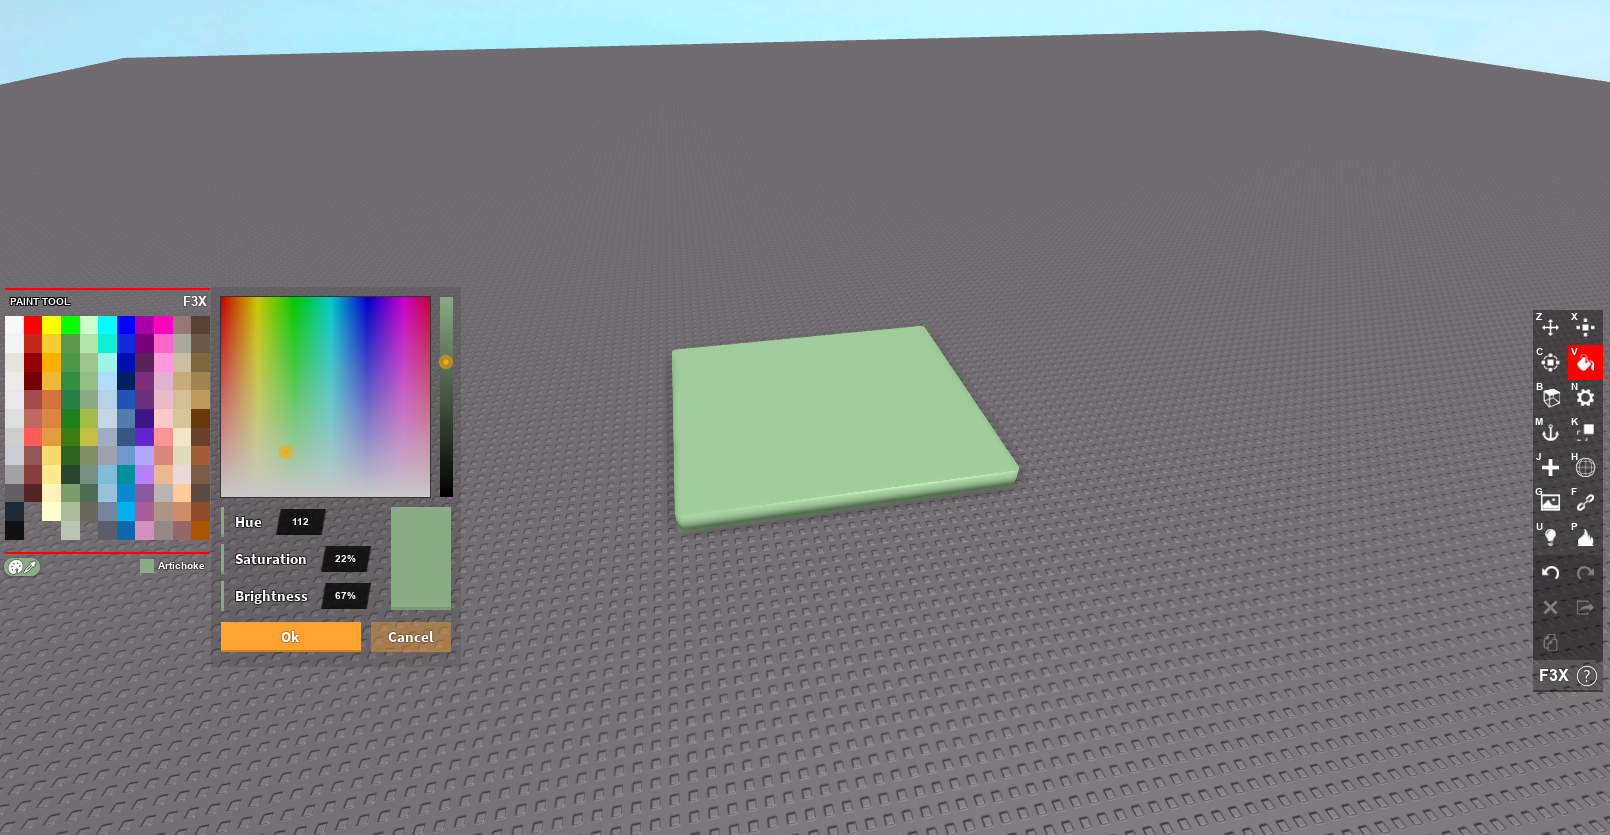 Model Resize Plugin Roblox Top 10 Best Plugins On Roblox Exactly As The Tile Says In This Post By Molegul Medium